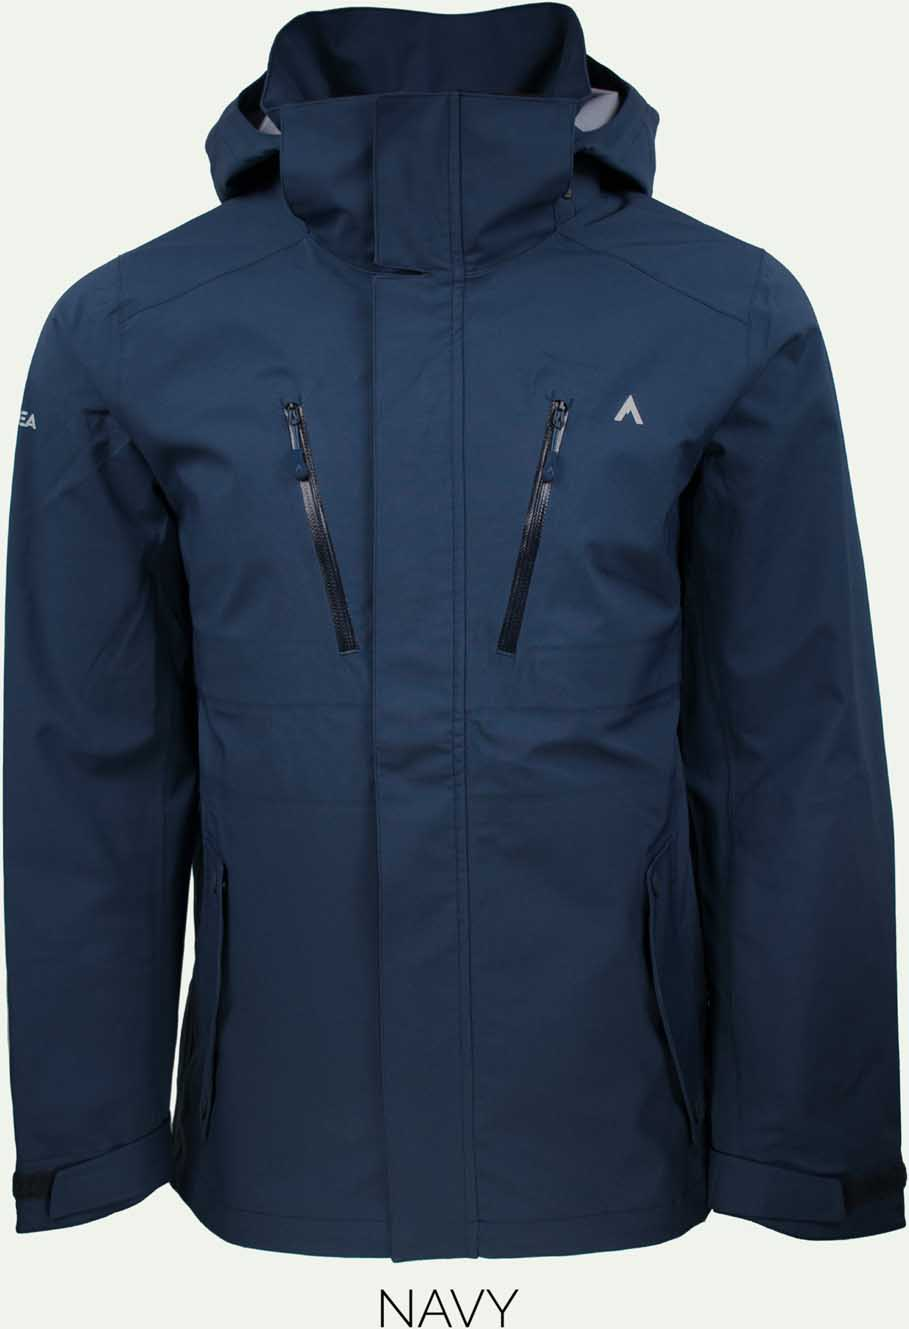 image terracea-station-jacket-navy-copy-jpg